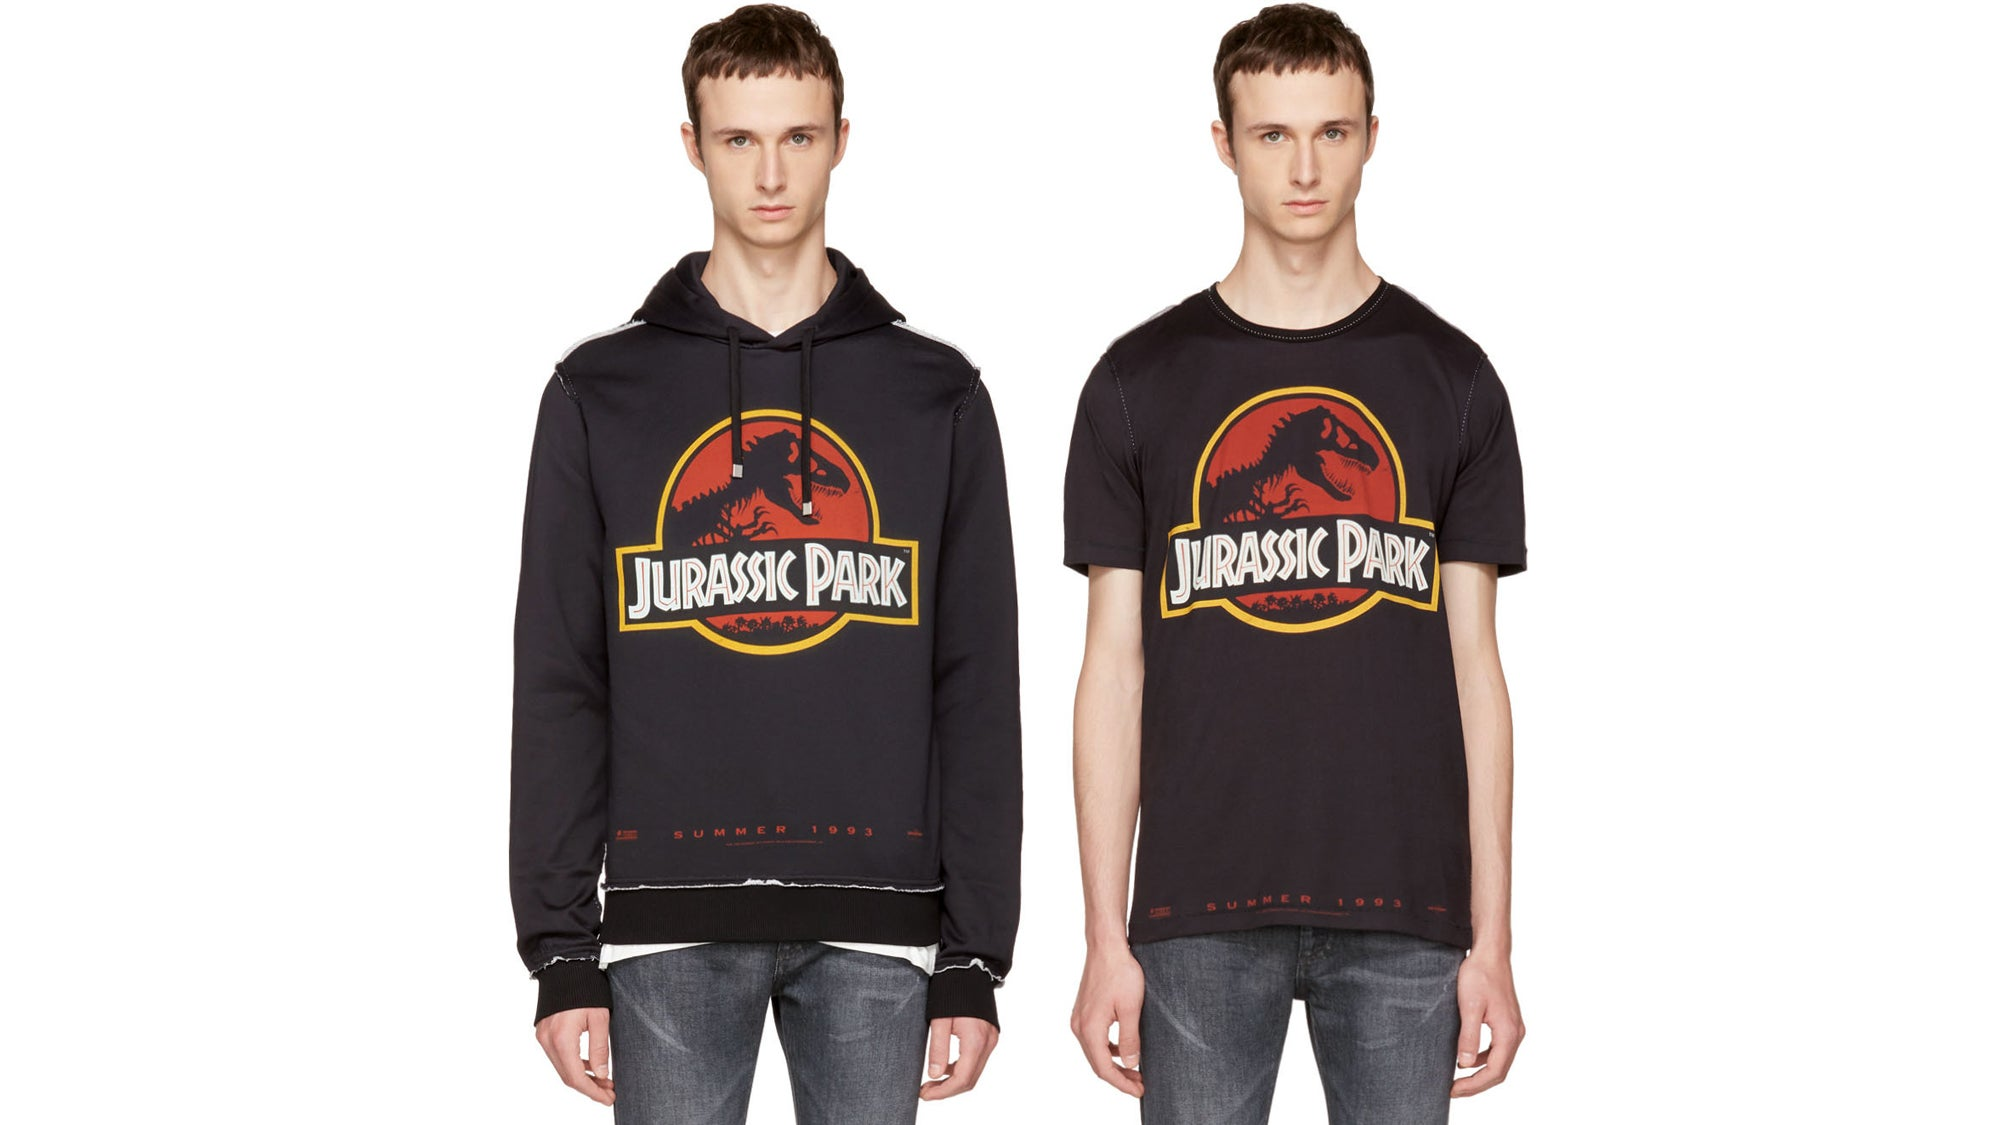 This $900 Dolce & Gabbana Hoodie And $570 Tee Are For The Most Die-Hard Jurassic Park Fans